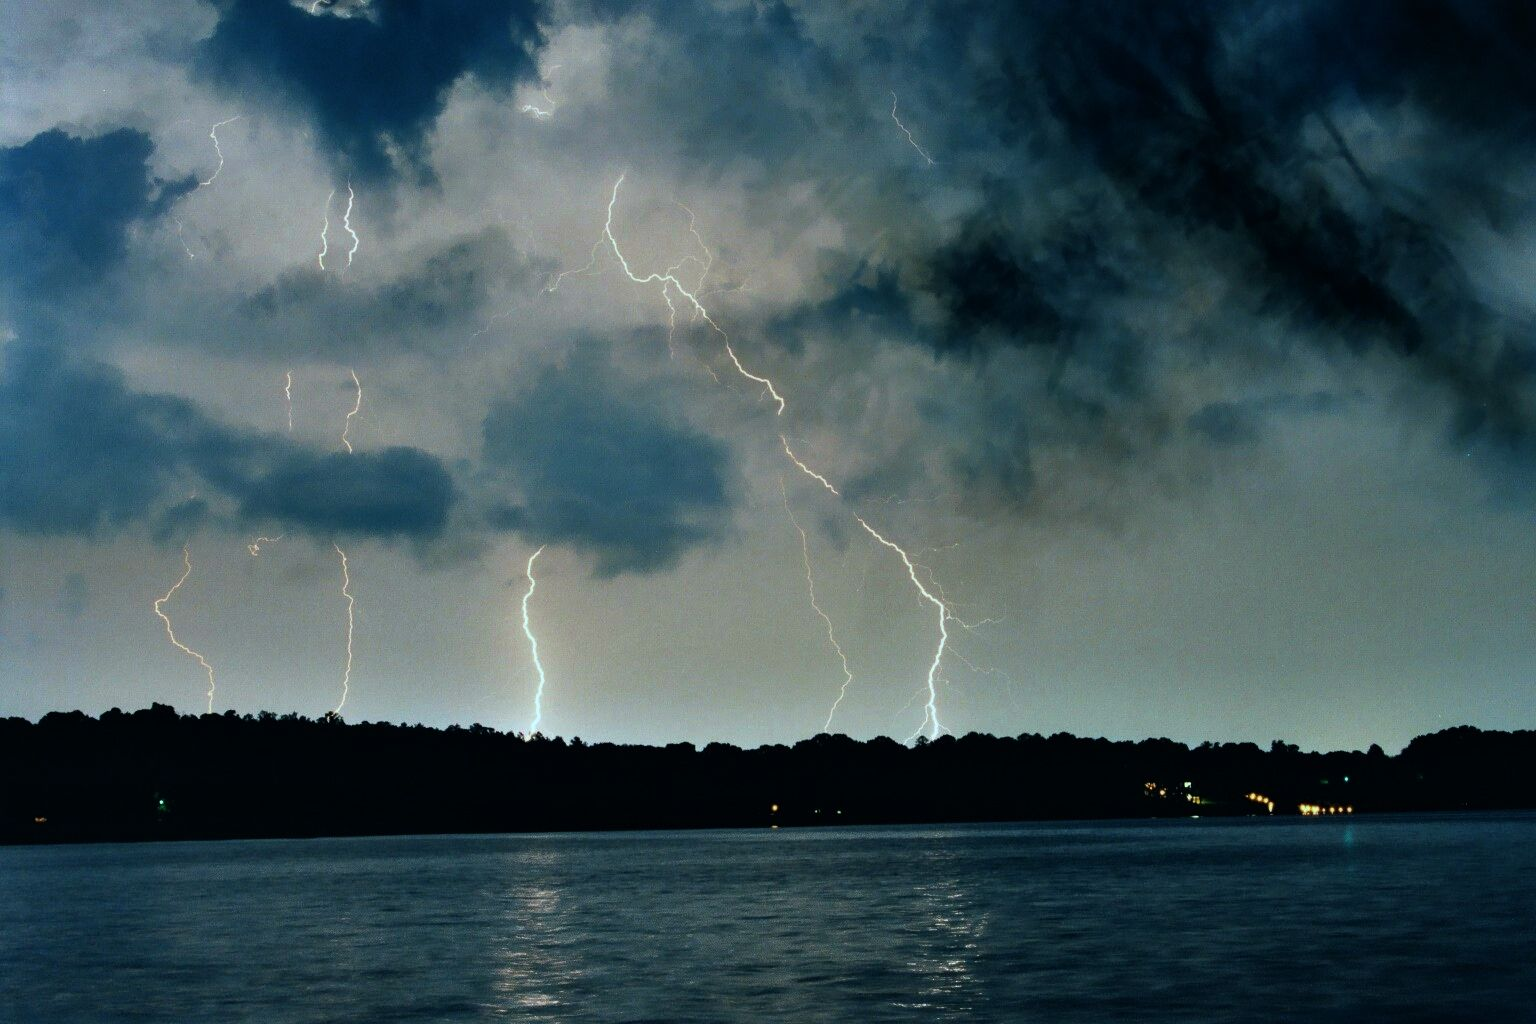 storms | Submit items for news releases by using the request form at http://www ...